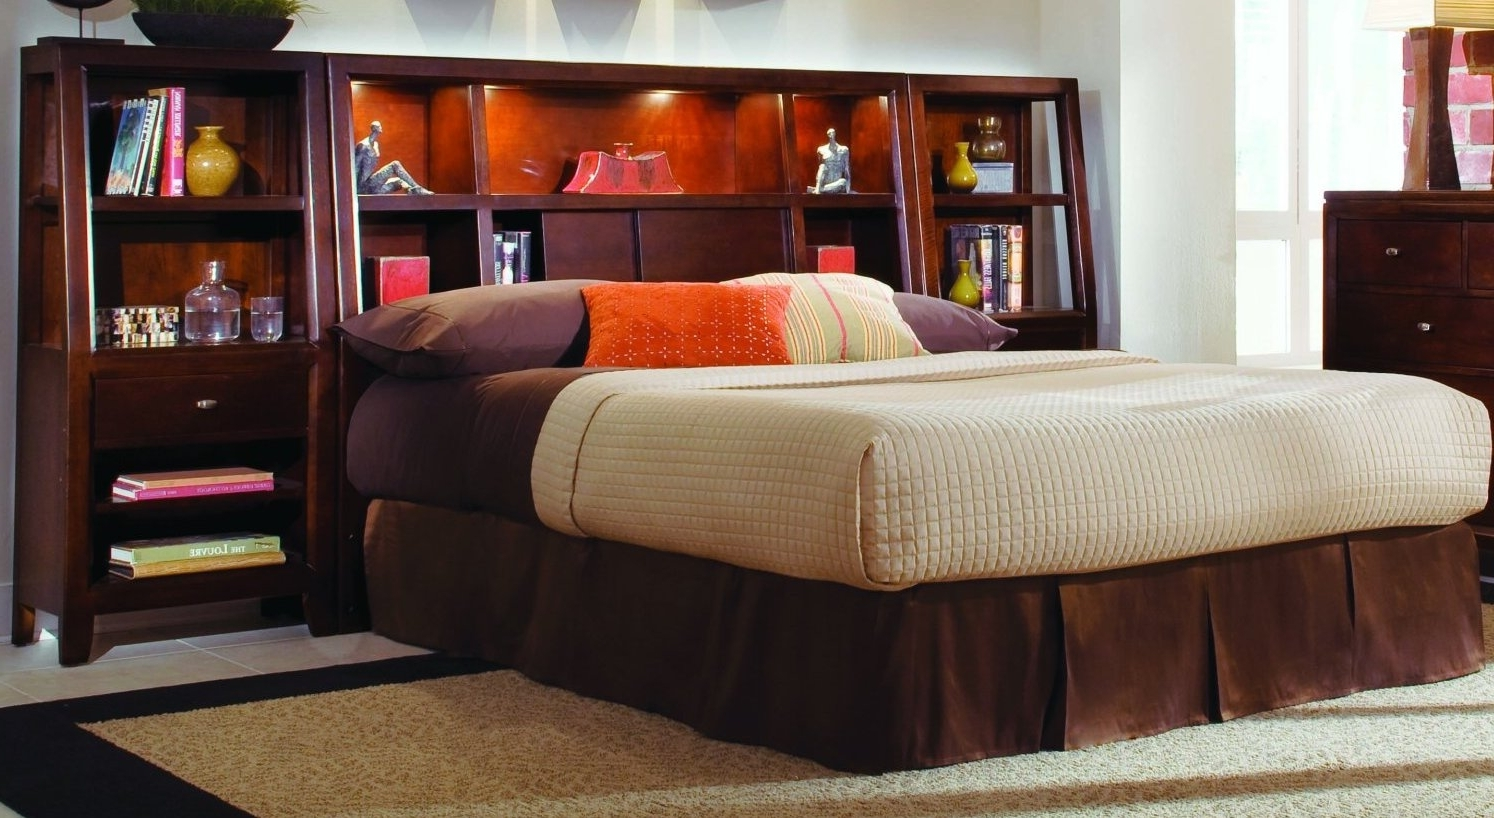 Best And Newest Queen Bookcase Headboard Modern House Design : Beautiful Bookcase Throughout Queen Bookcases Headboard (View 5 of 15)